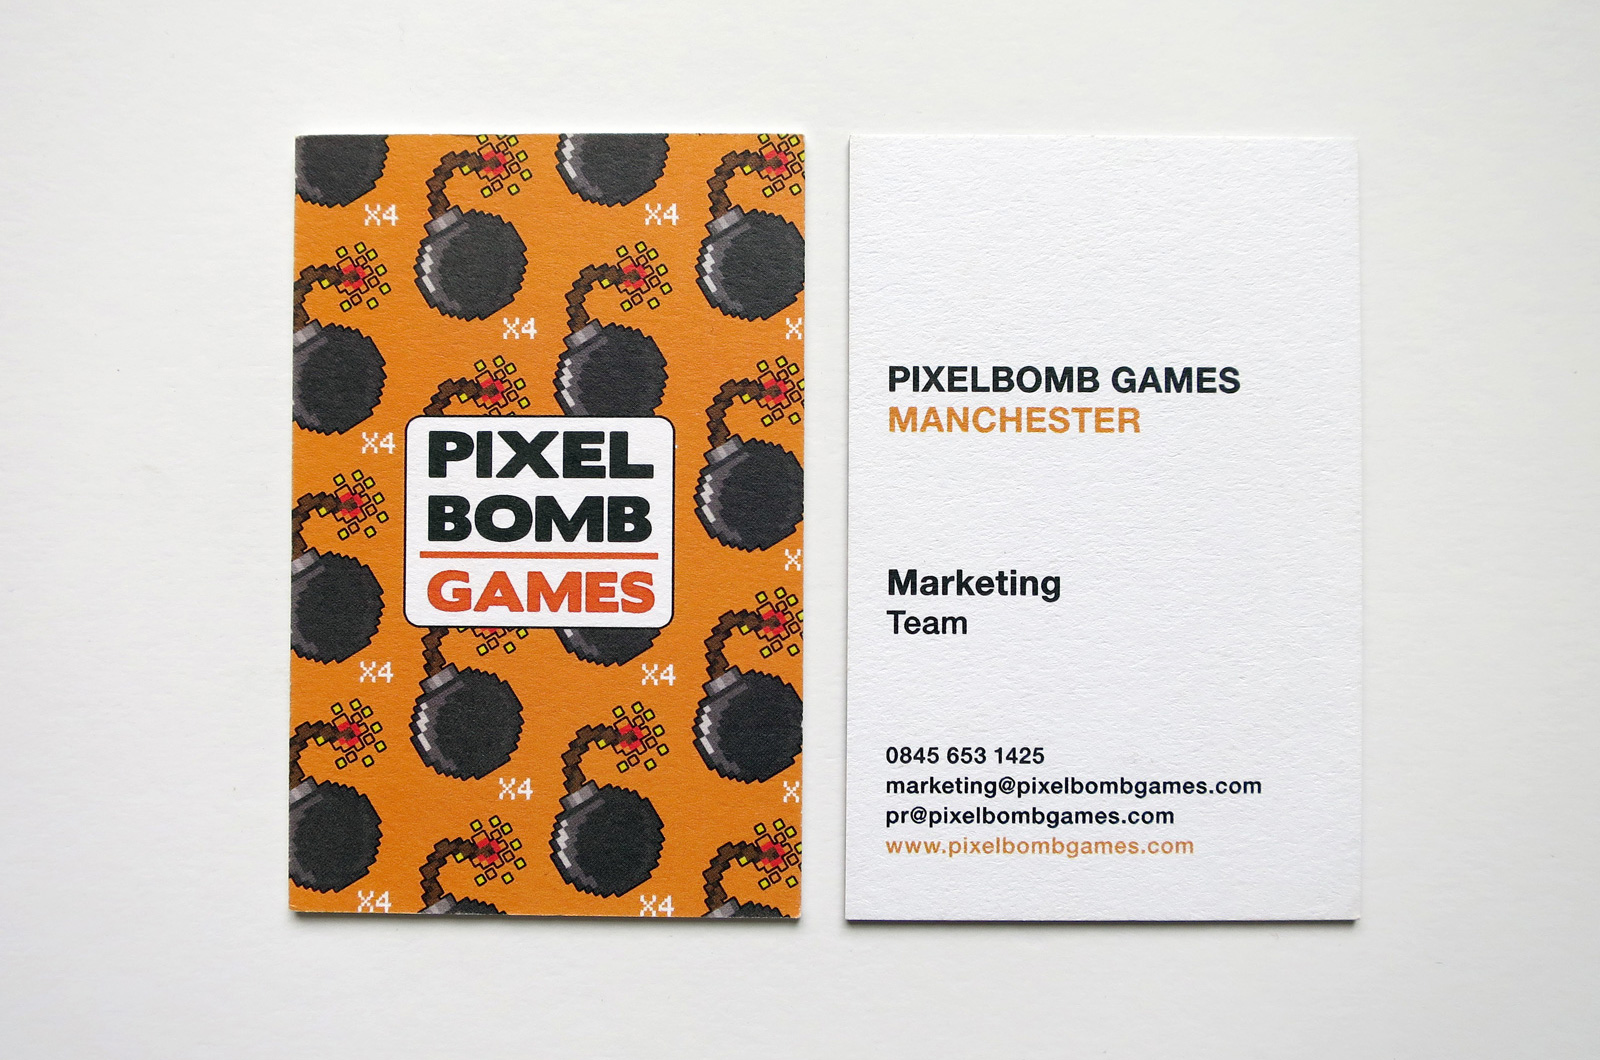 Pixelbomb Games Business Cards 02